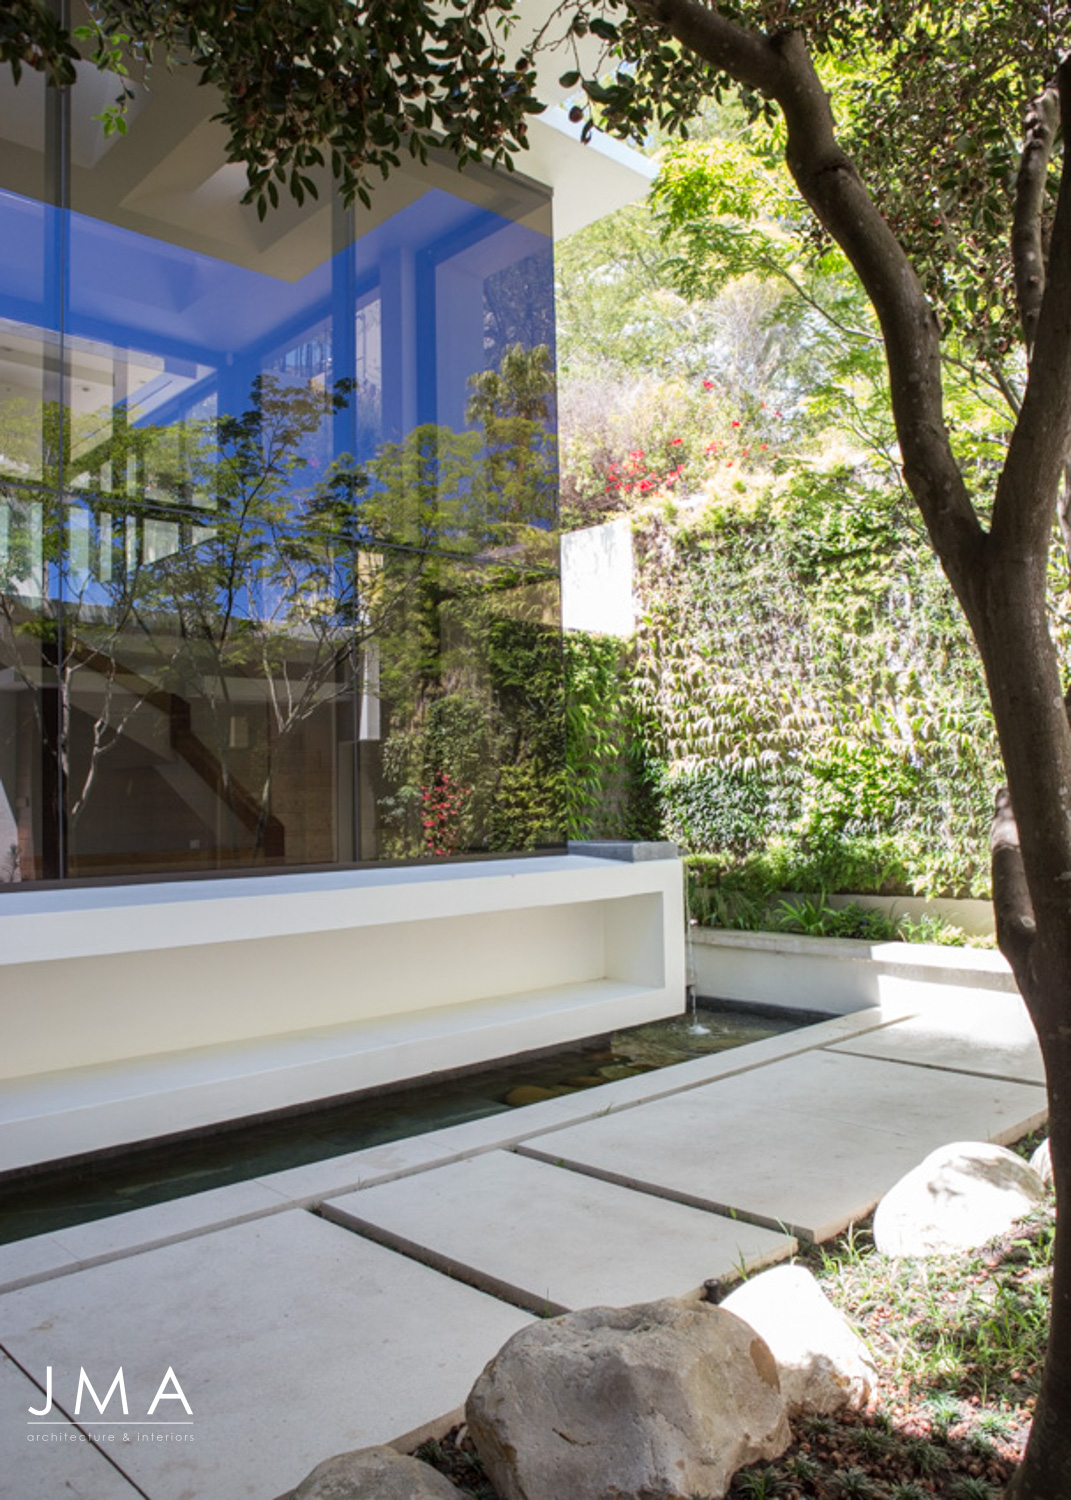 Avenue Fresnaye Villa Entrance Courtyard architecture & landscaping - Interior Architectural design by Jenny Mills Architects